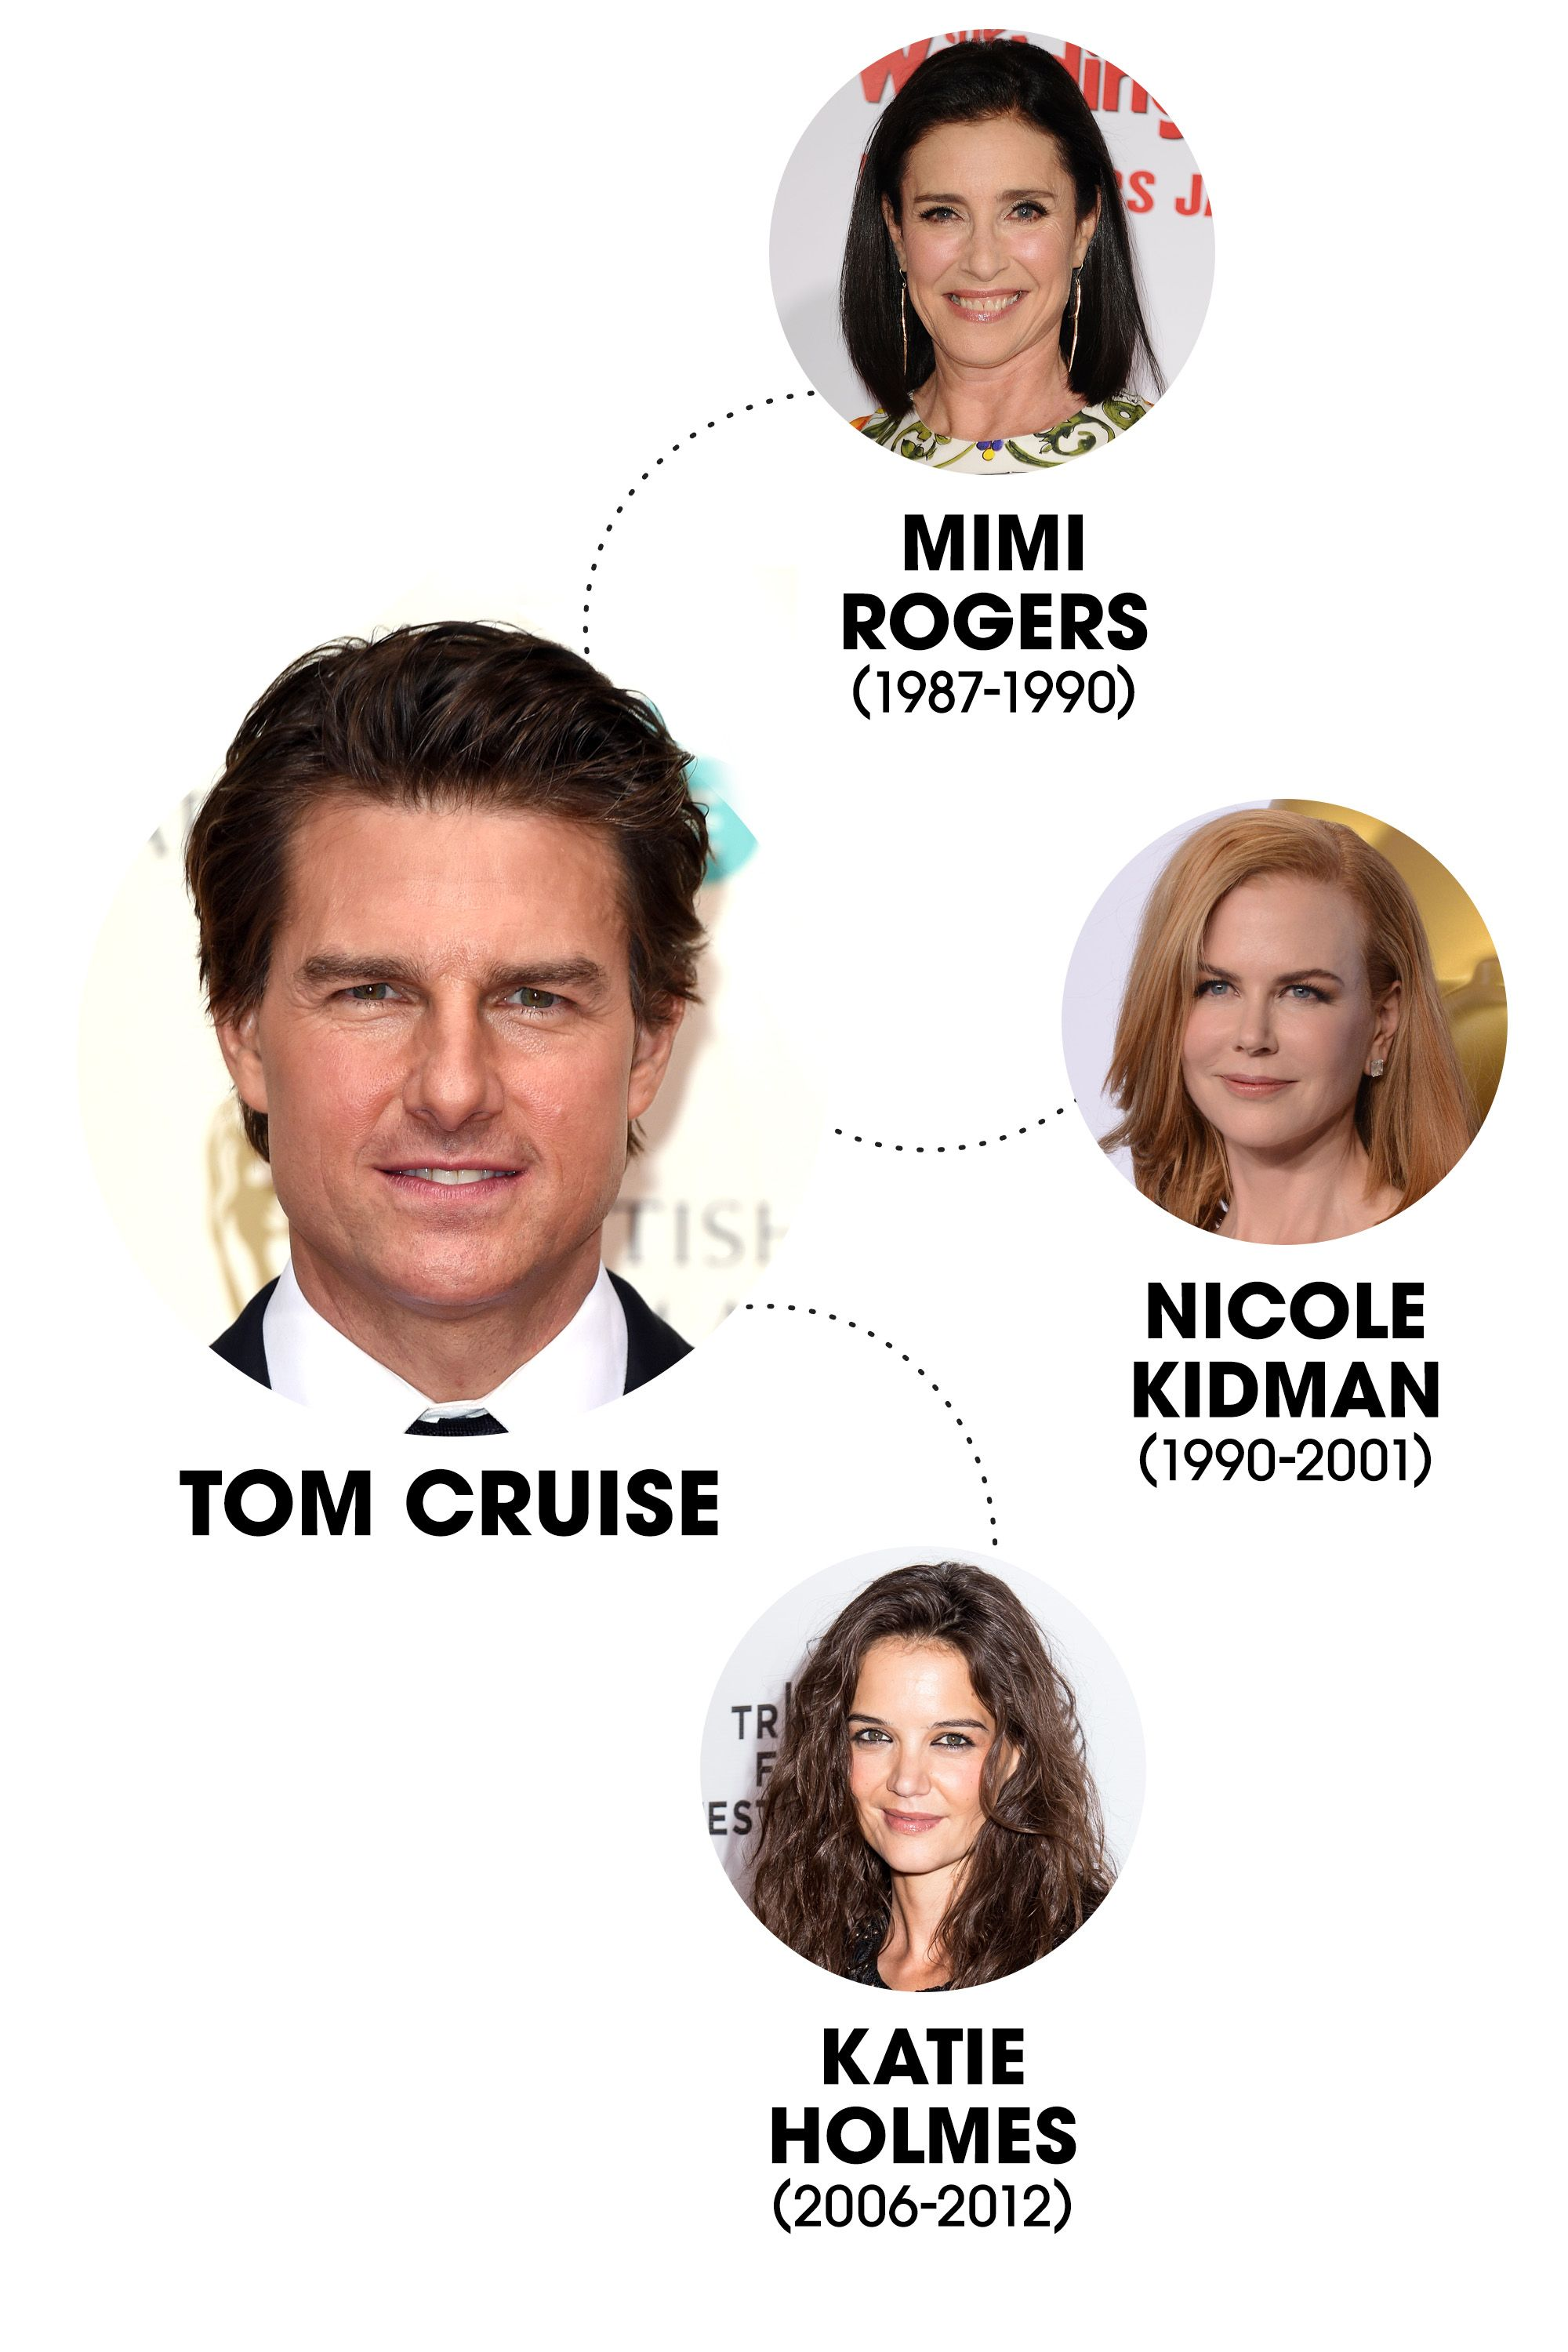 The explosive (and highly scrutinized) end to Cruise's marriage with Katie Holmes is still <em>quite</em> fresh in our minds, but who can forget that he and Nicole Kidman were among Hollywood's elite couples of the '90s? Before that, the actor was briefly married to actress (and fellow Scientologist) Mimi Rogers.